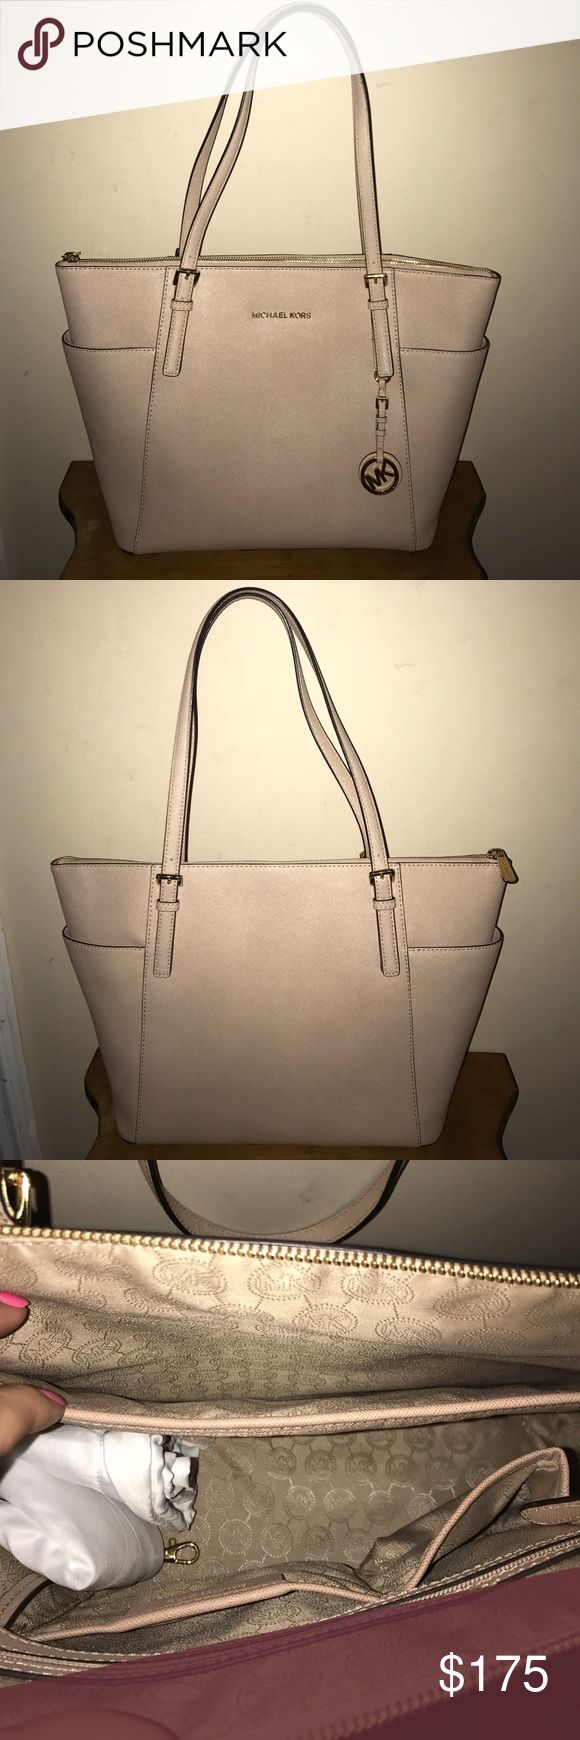 Michael Kors Tote Authentic Michael Kors Zip Top Large Tote. Gently used but looks brand new. Color: Oyster. Includes: Michael Kors dust bag shown in picture. No damage to any of the leather. Multiple storage inside. Comment with any questions! Price negotiable KORS Michael Kors Bags Totes